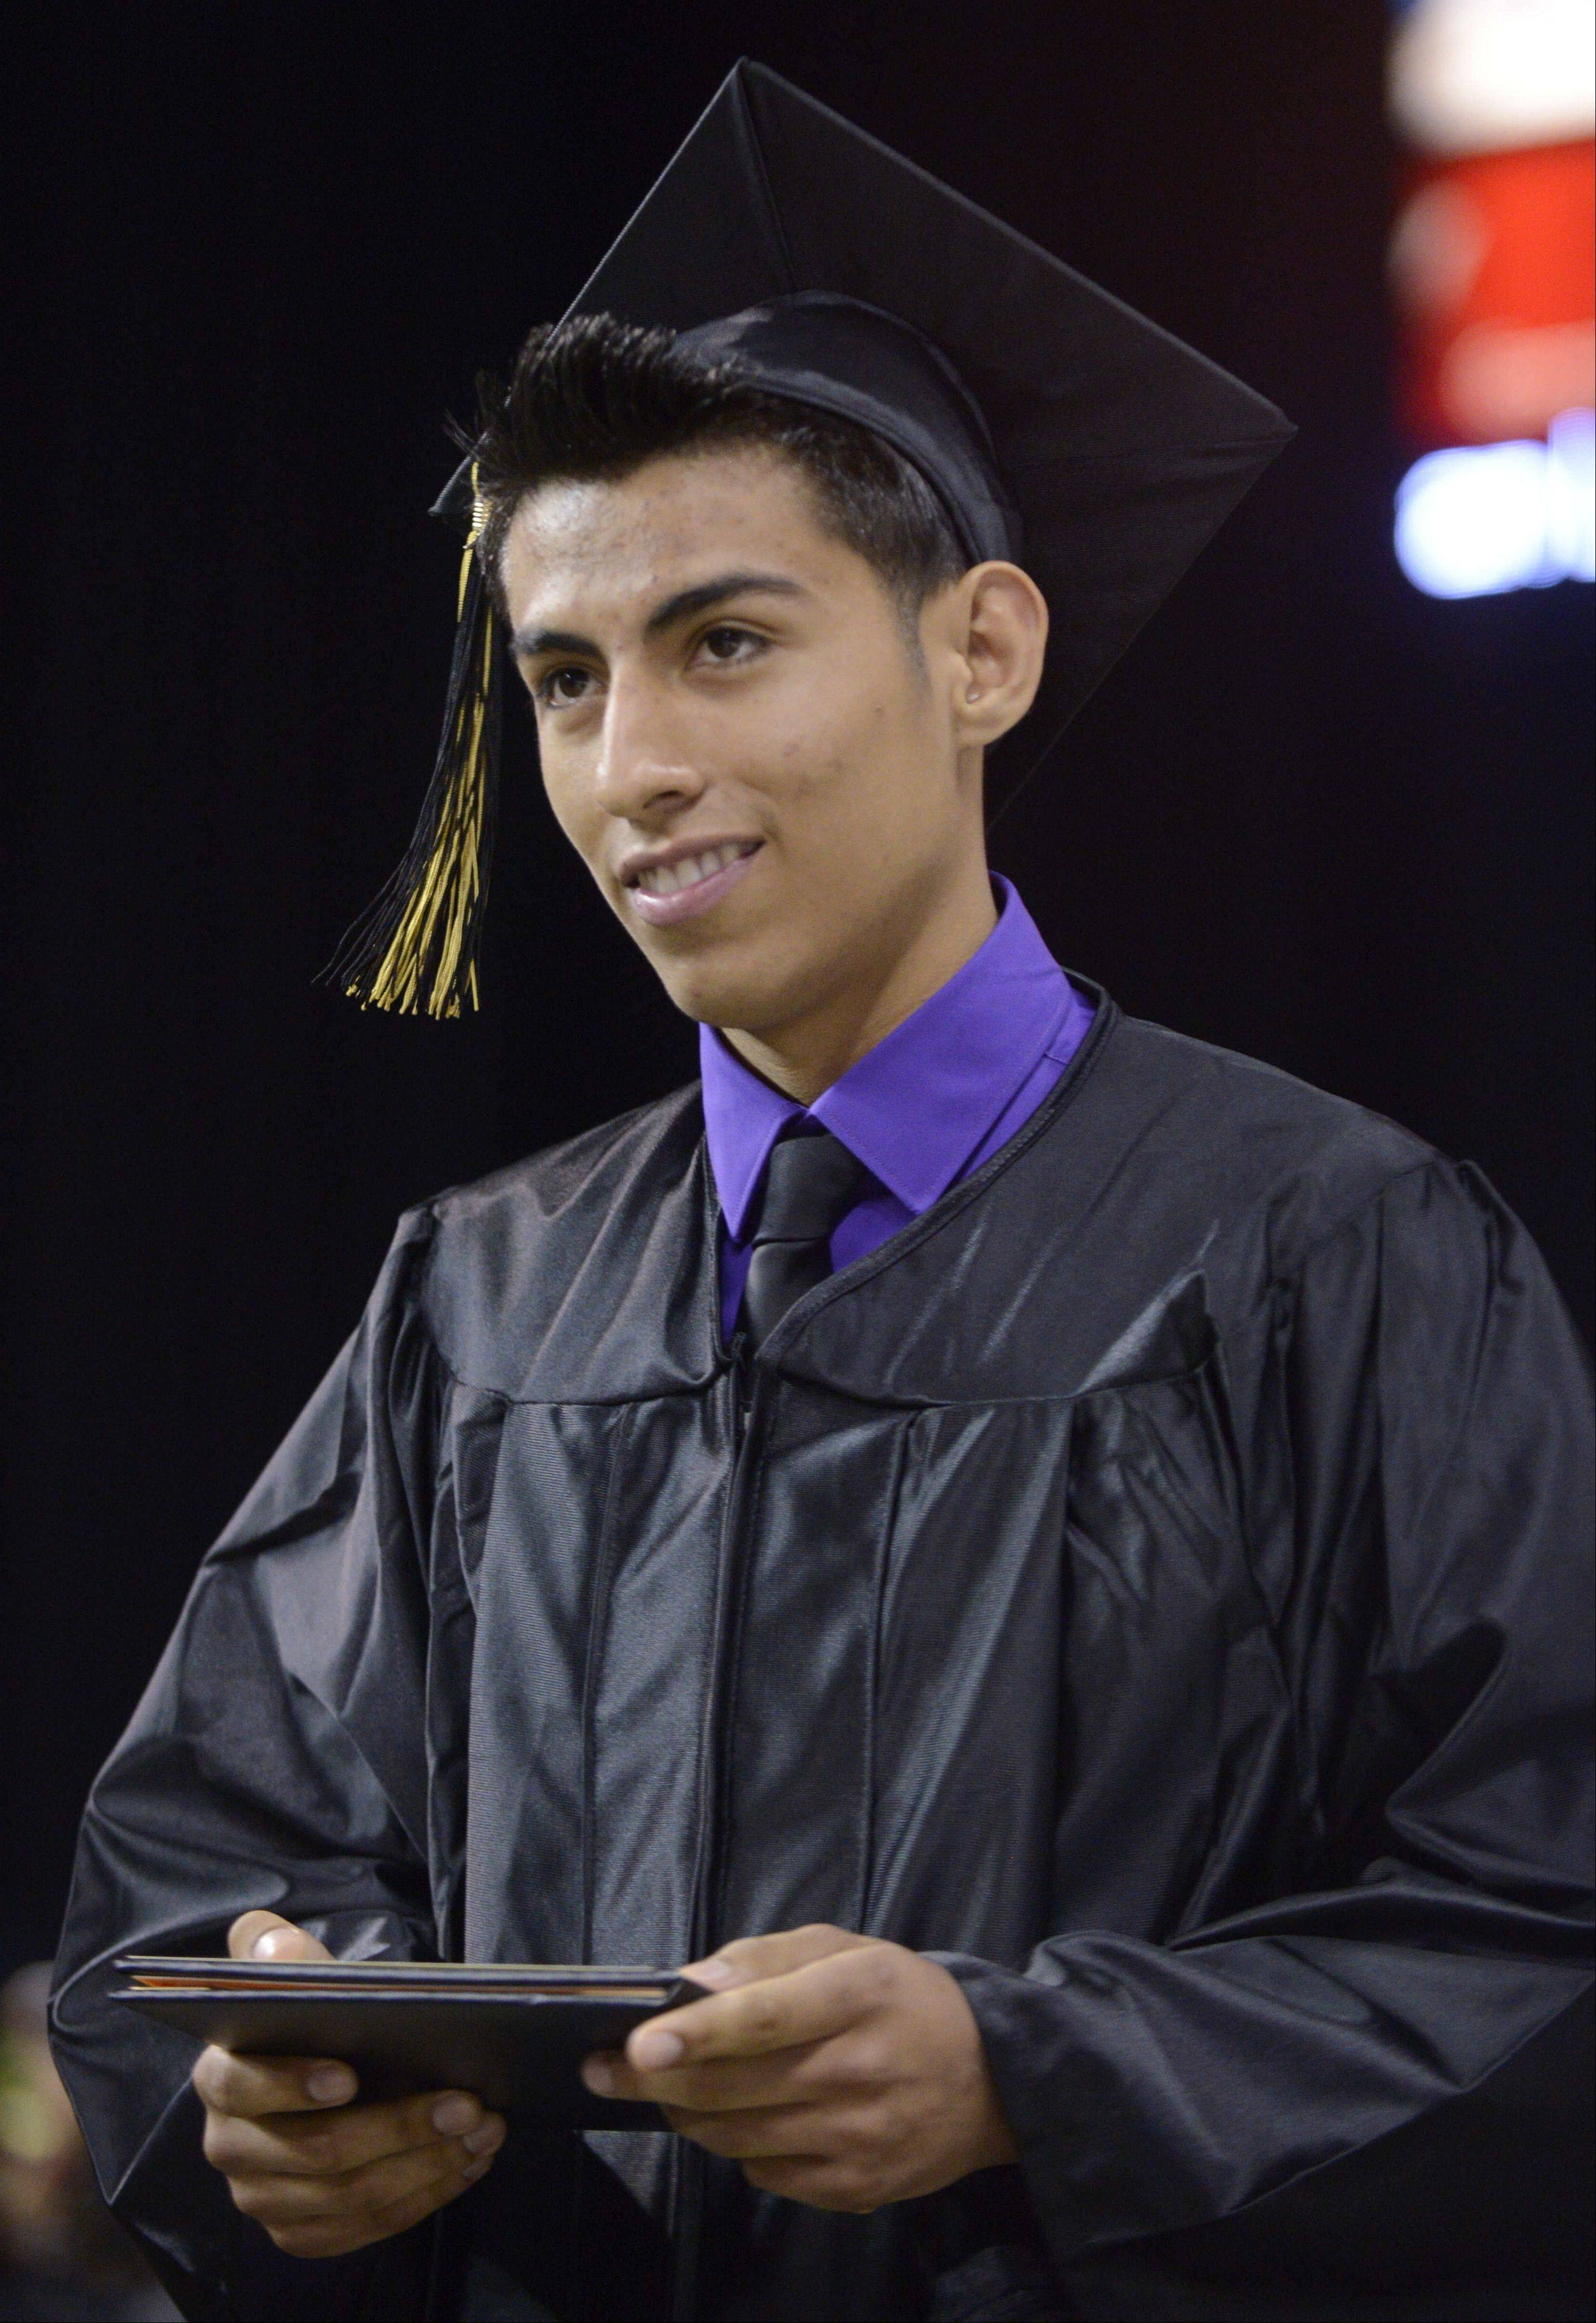 Images from the Streamwood High School commencement ceremony Saturday, May 25, 2013 at the Sears Centre in Hoffman Estates.